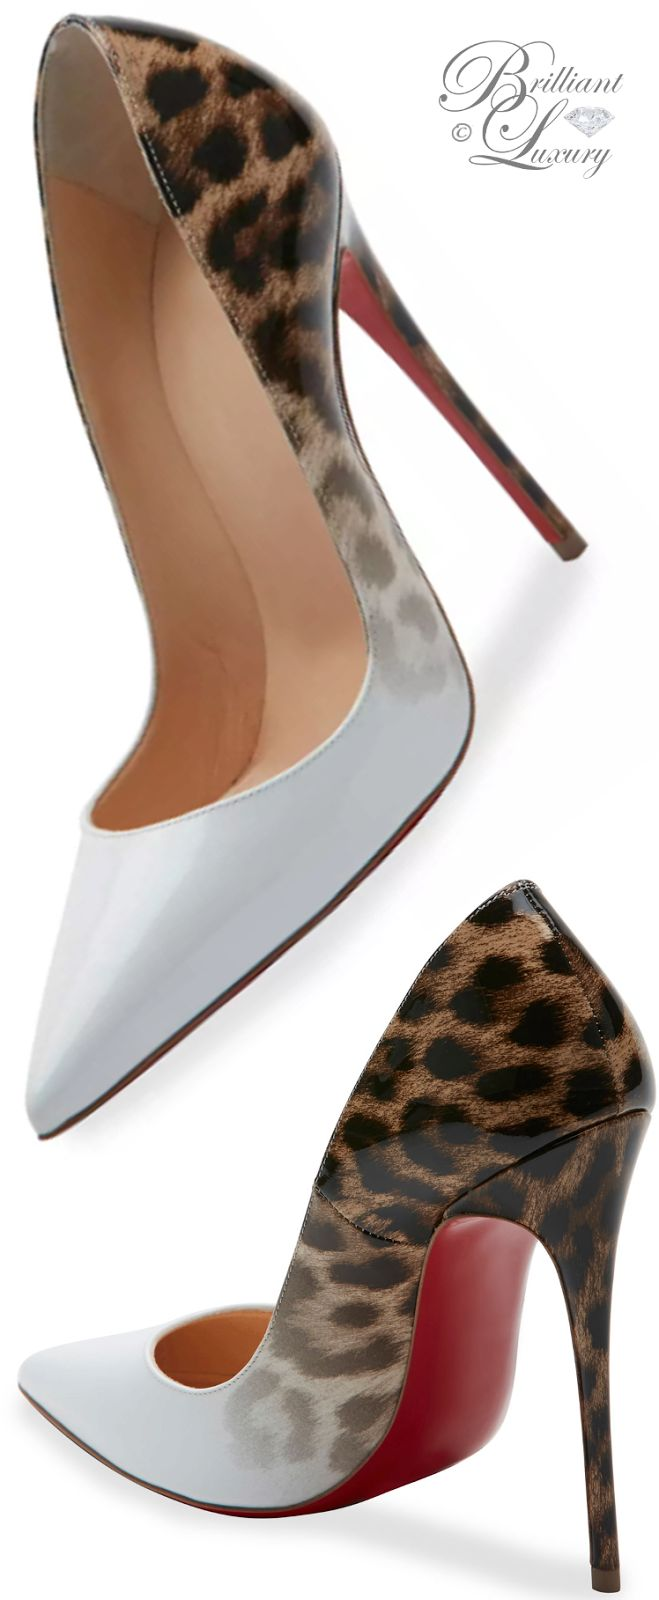 Brilliant Luxury * Christian Louboutin So Kate Degrade 120mm Red Sole Pump Más